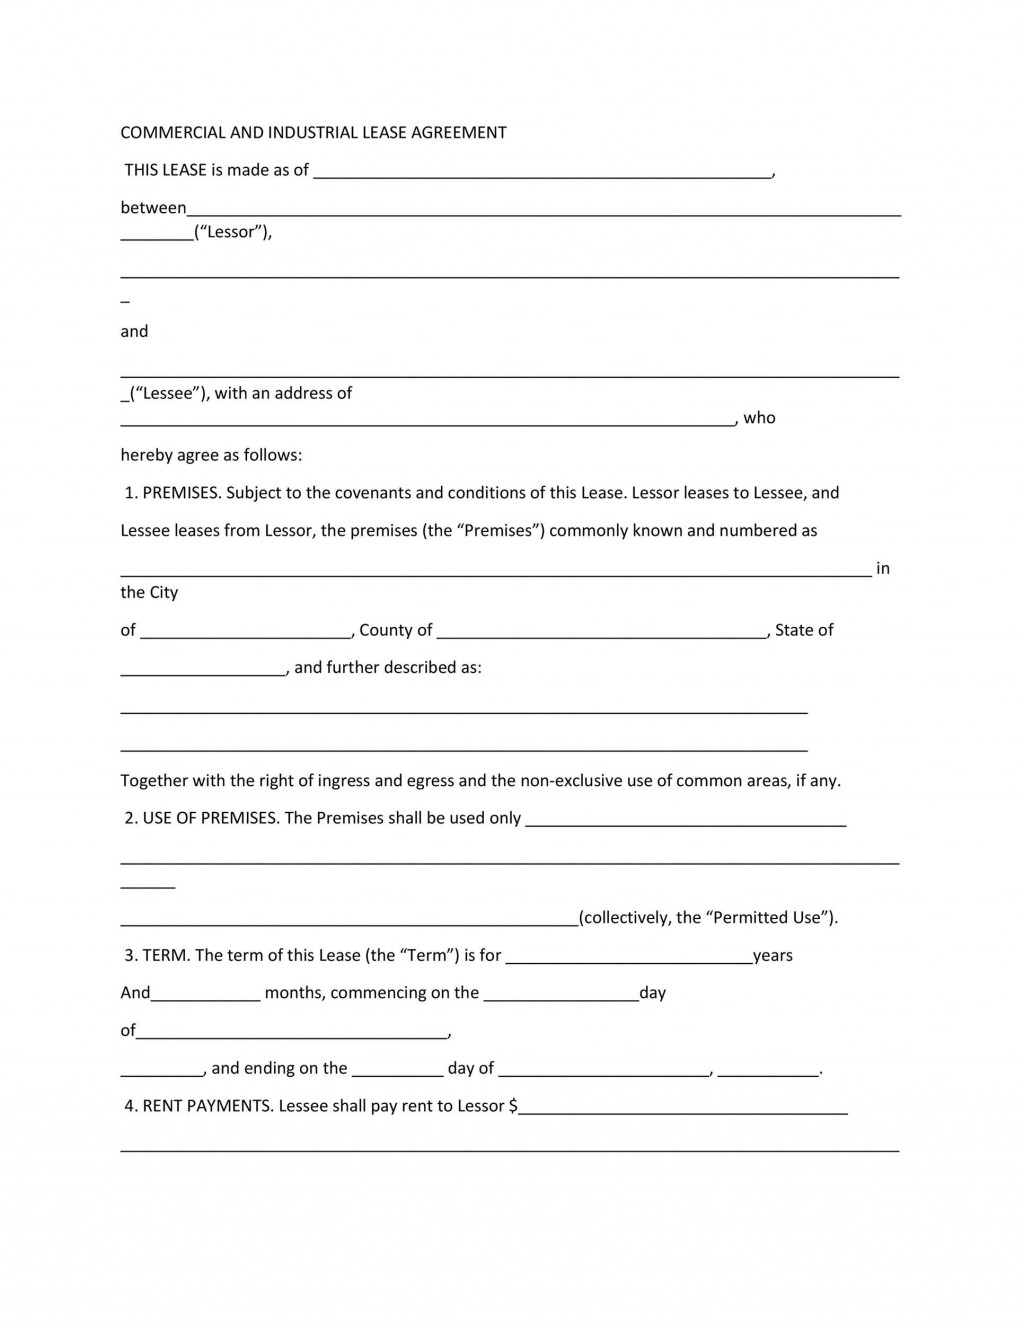 009 Beautiful Free Commercial Lease Agreement Template Australia High Resolution  Queensland DownloadLarge